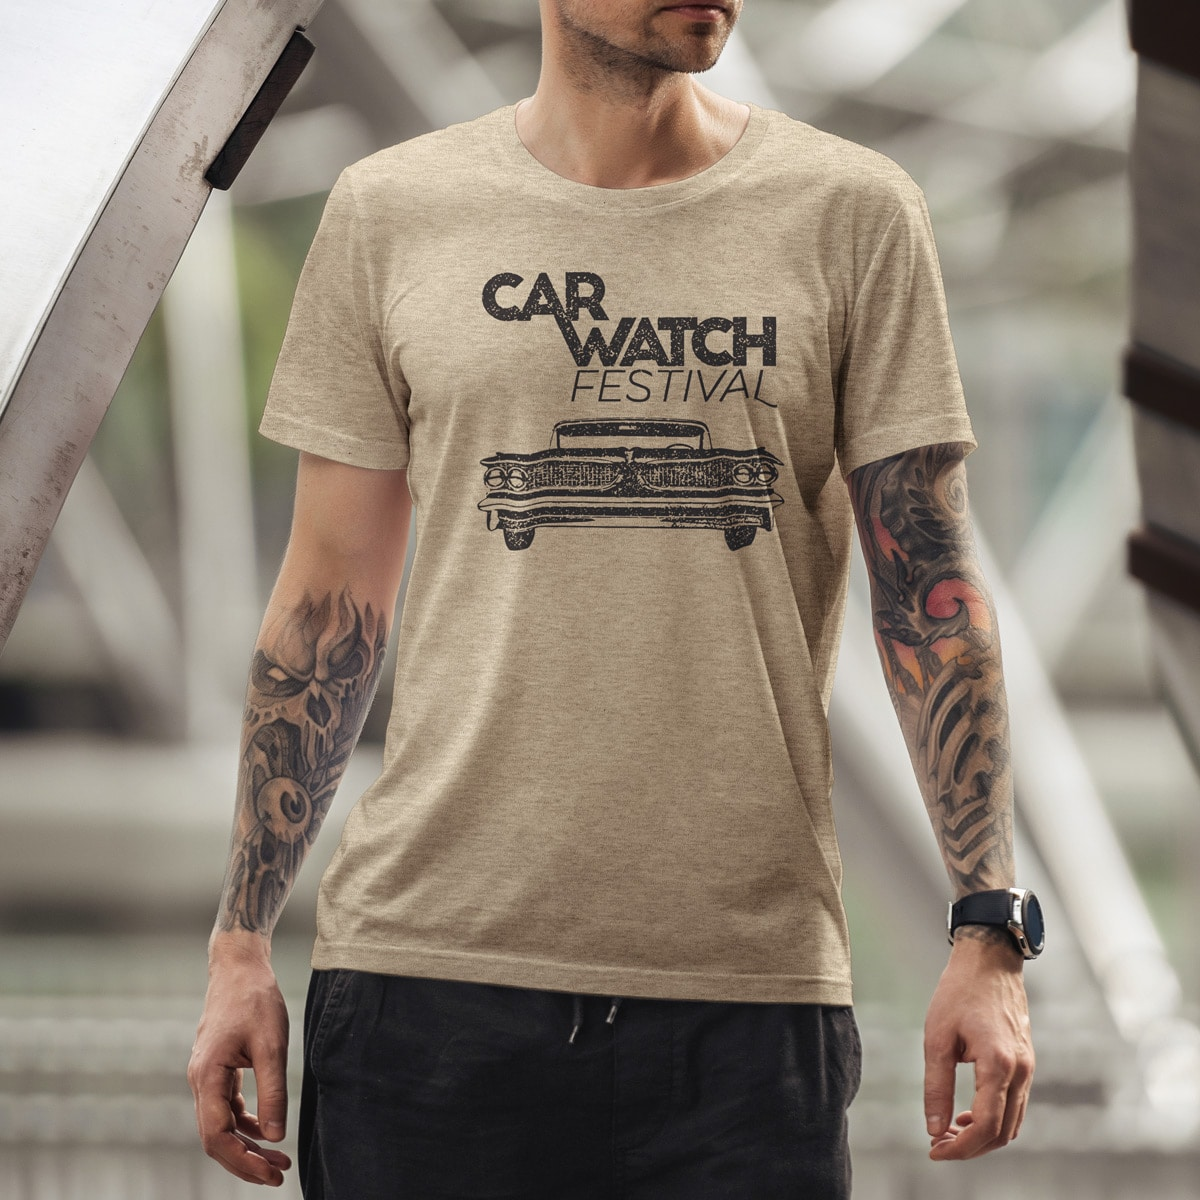 Car Watch Festival Shirt